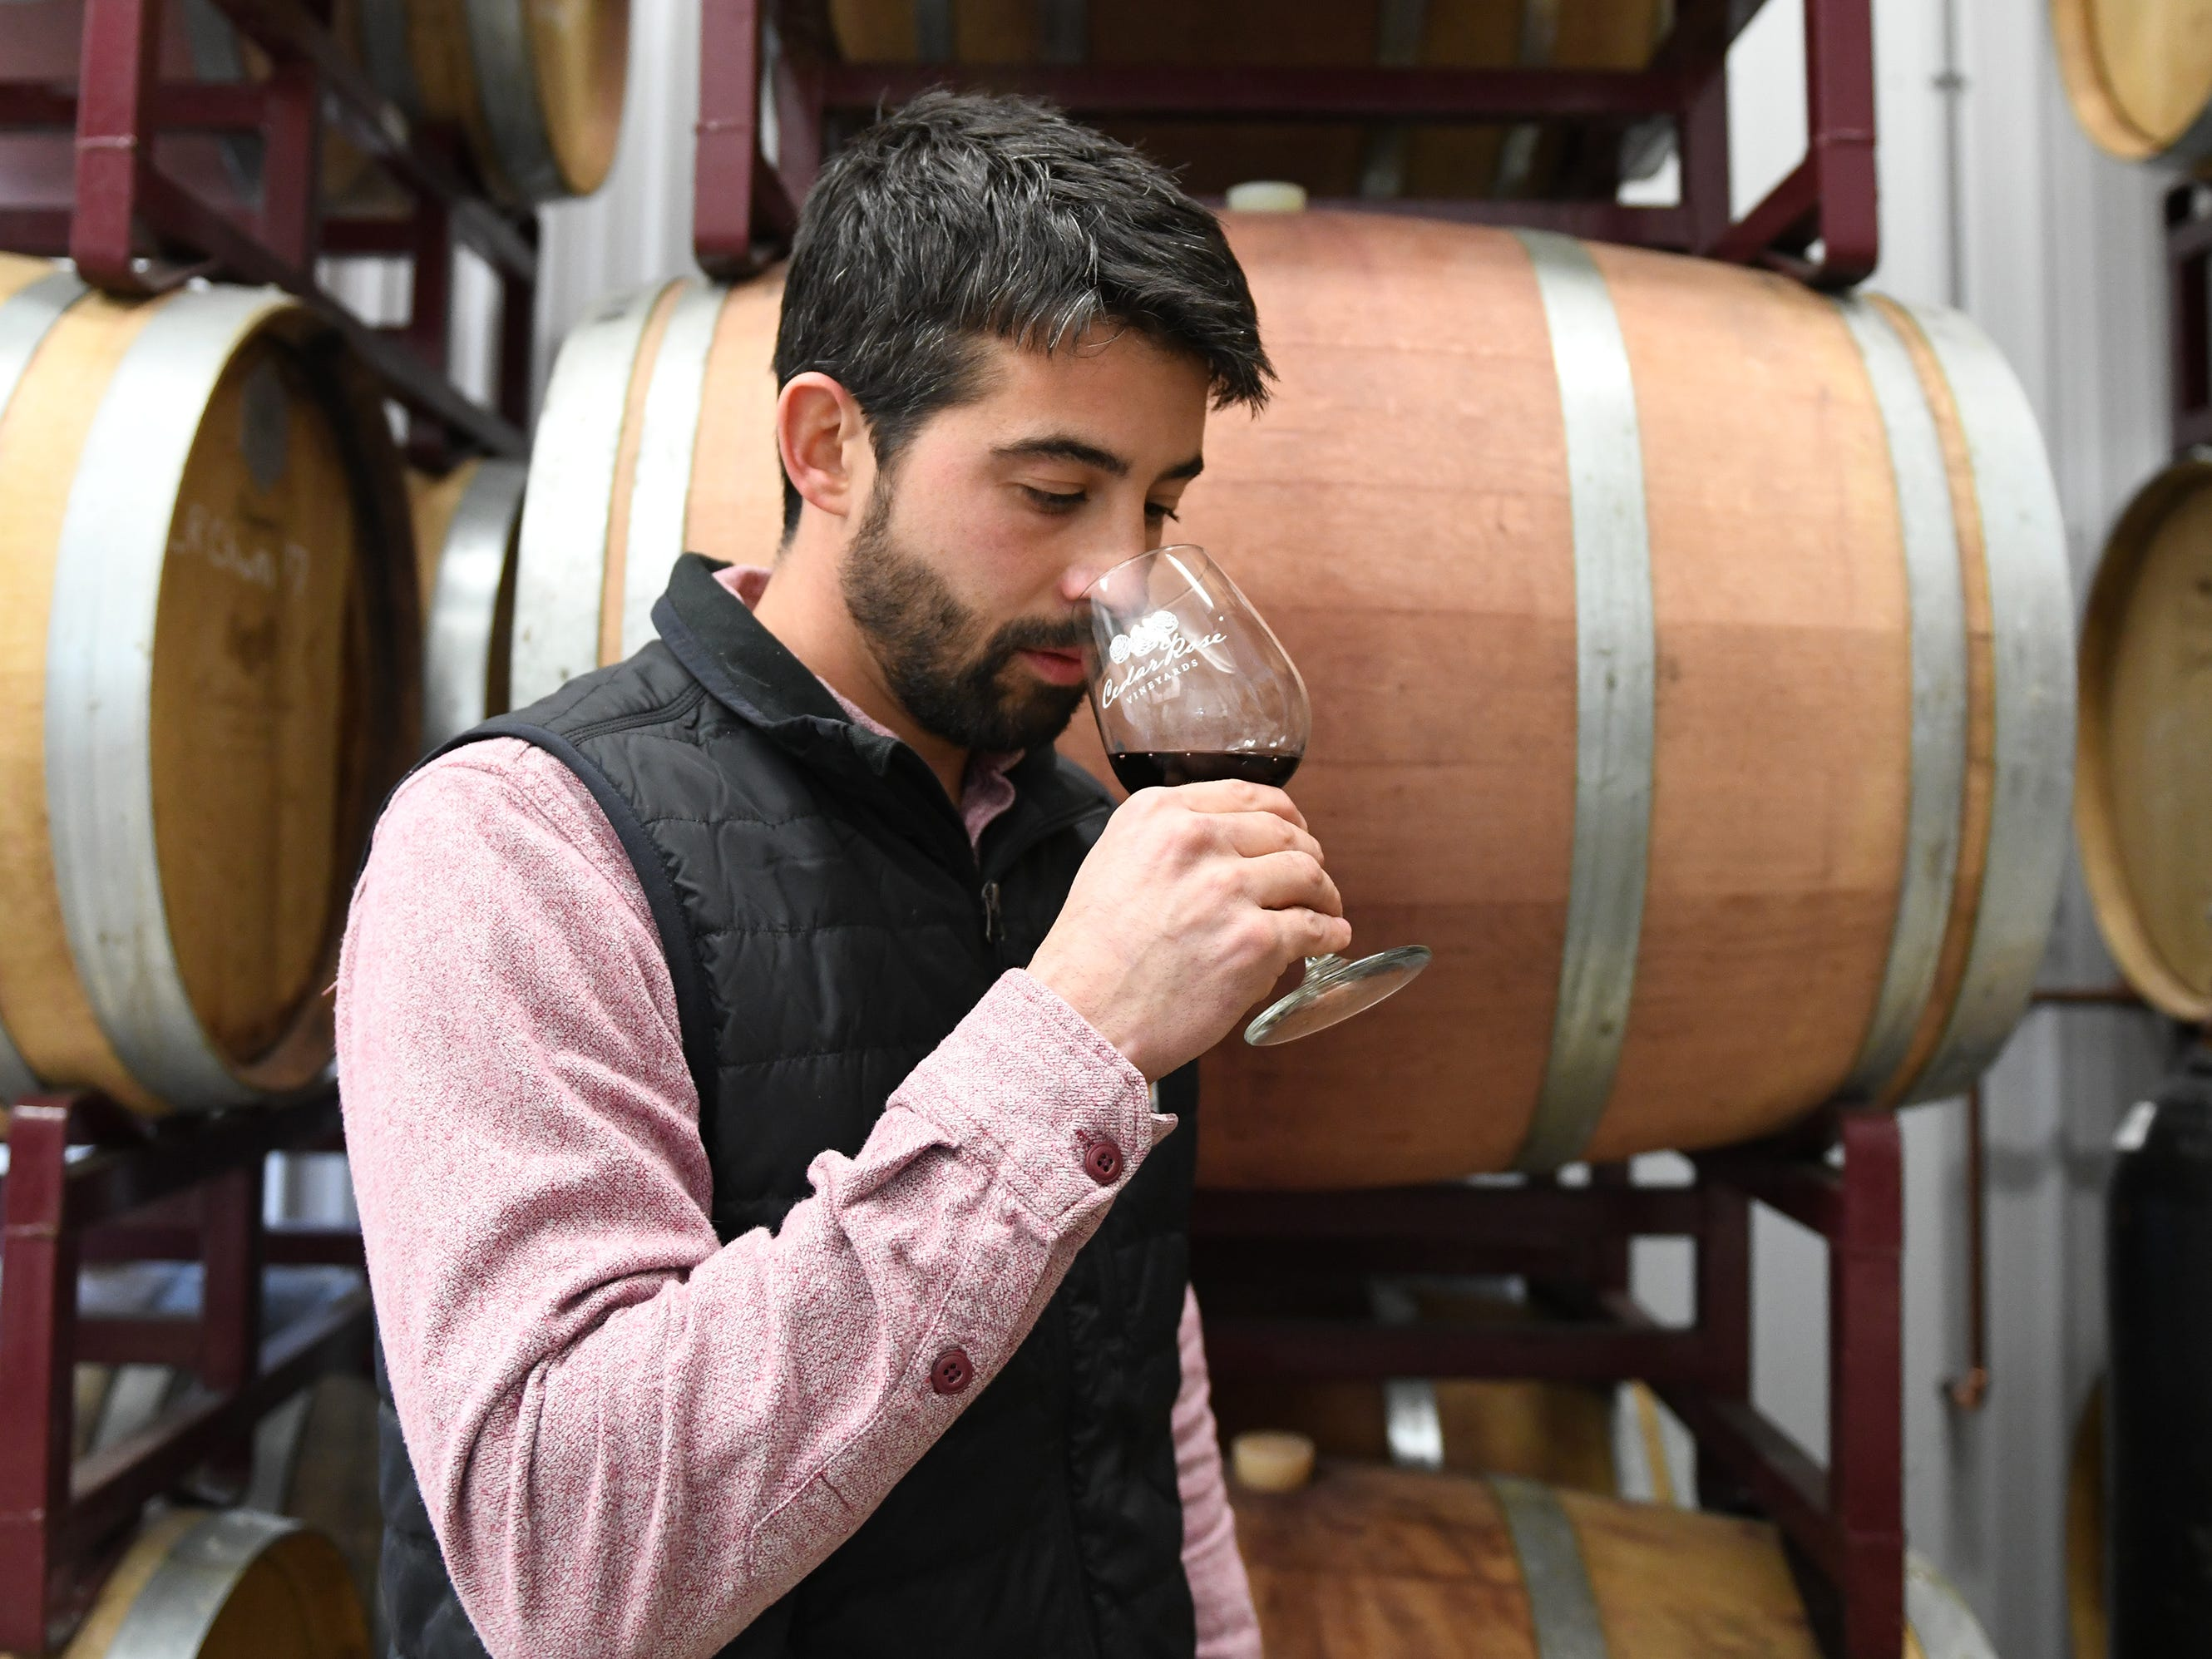 Cedar Rose Vineyards managing partner Steven Becker checks the aroma of a glass of wine on Tuesday, January 8, 2019.